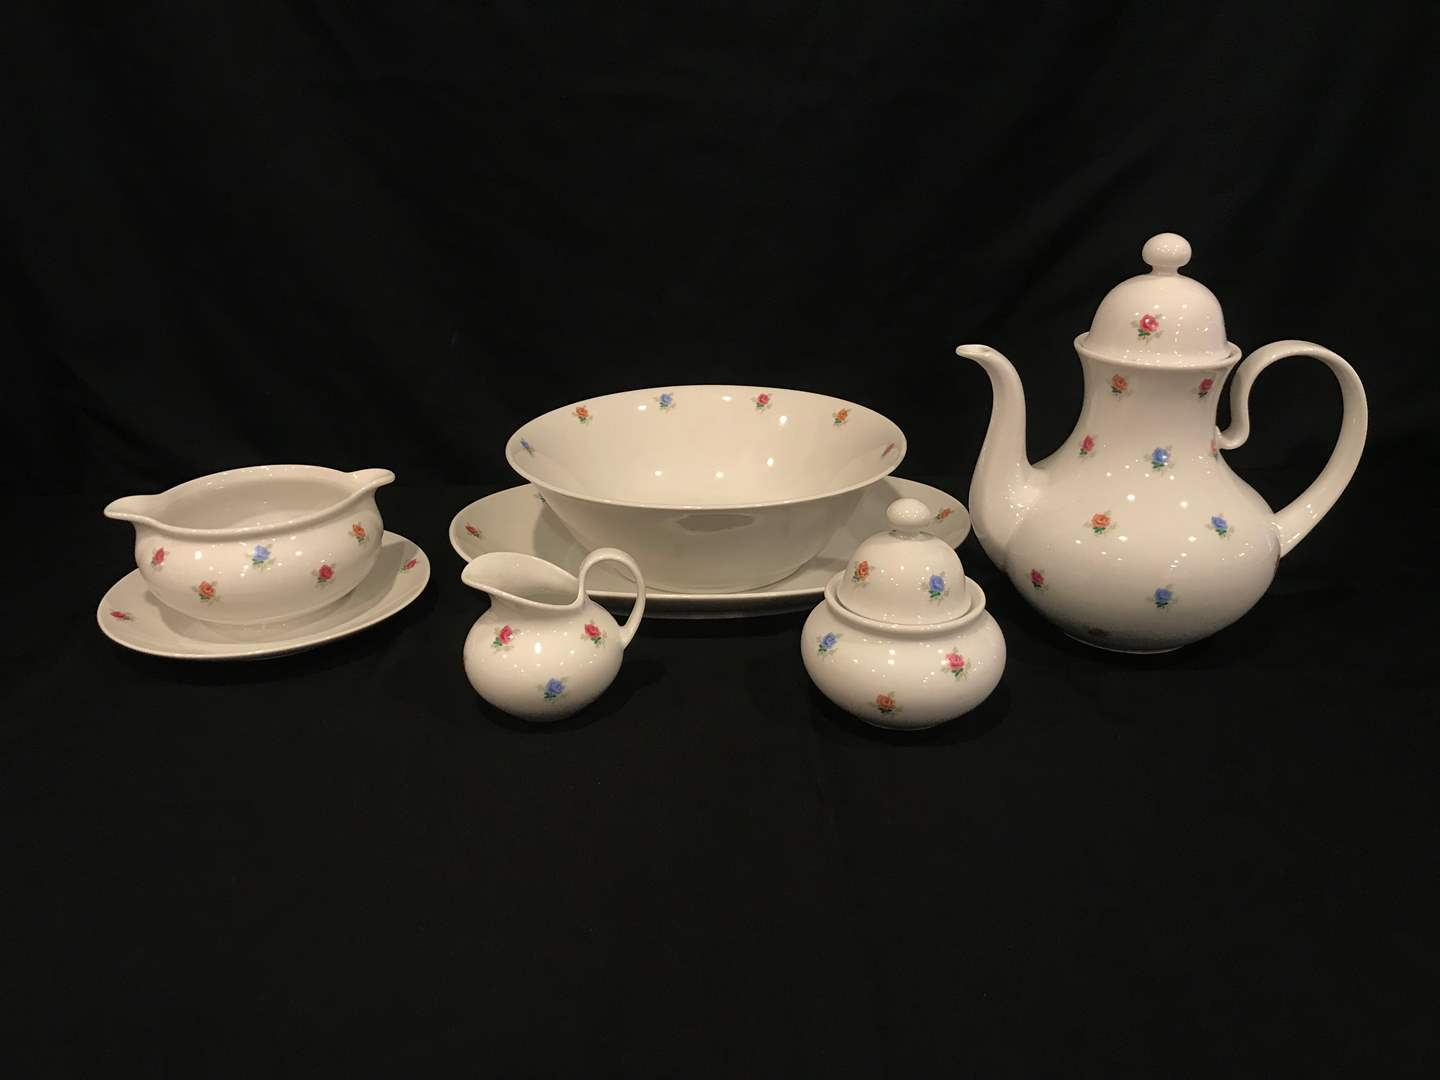 Lot # 82 - Very Cute 8 Piece Set of Seltman Weiden Patricia China (main image)